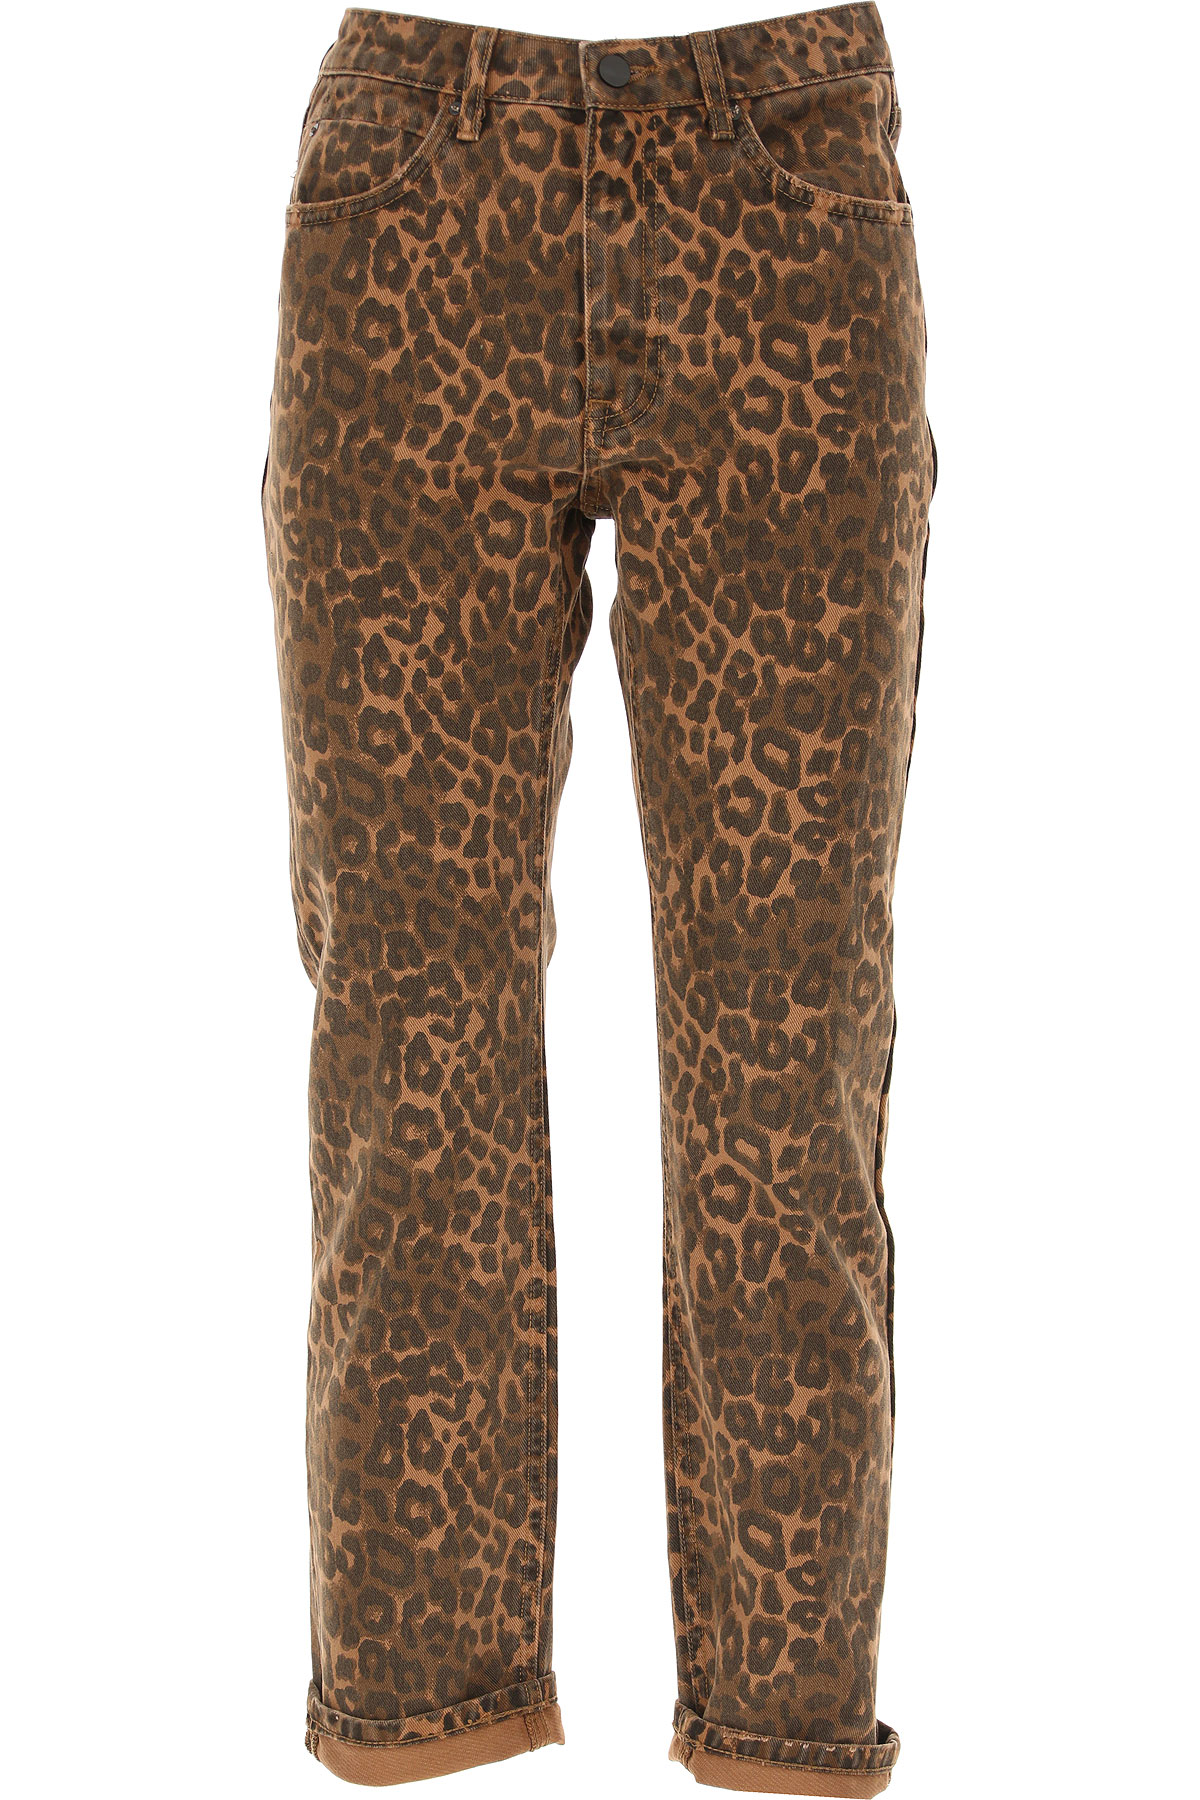 Image of Alexander Wang Jeans, Leopard, Cotton, 2017, 26 27 30